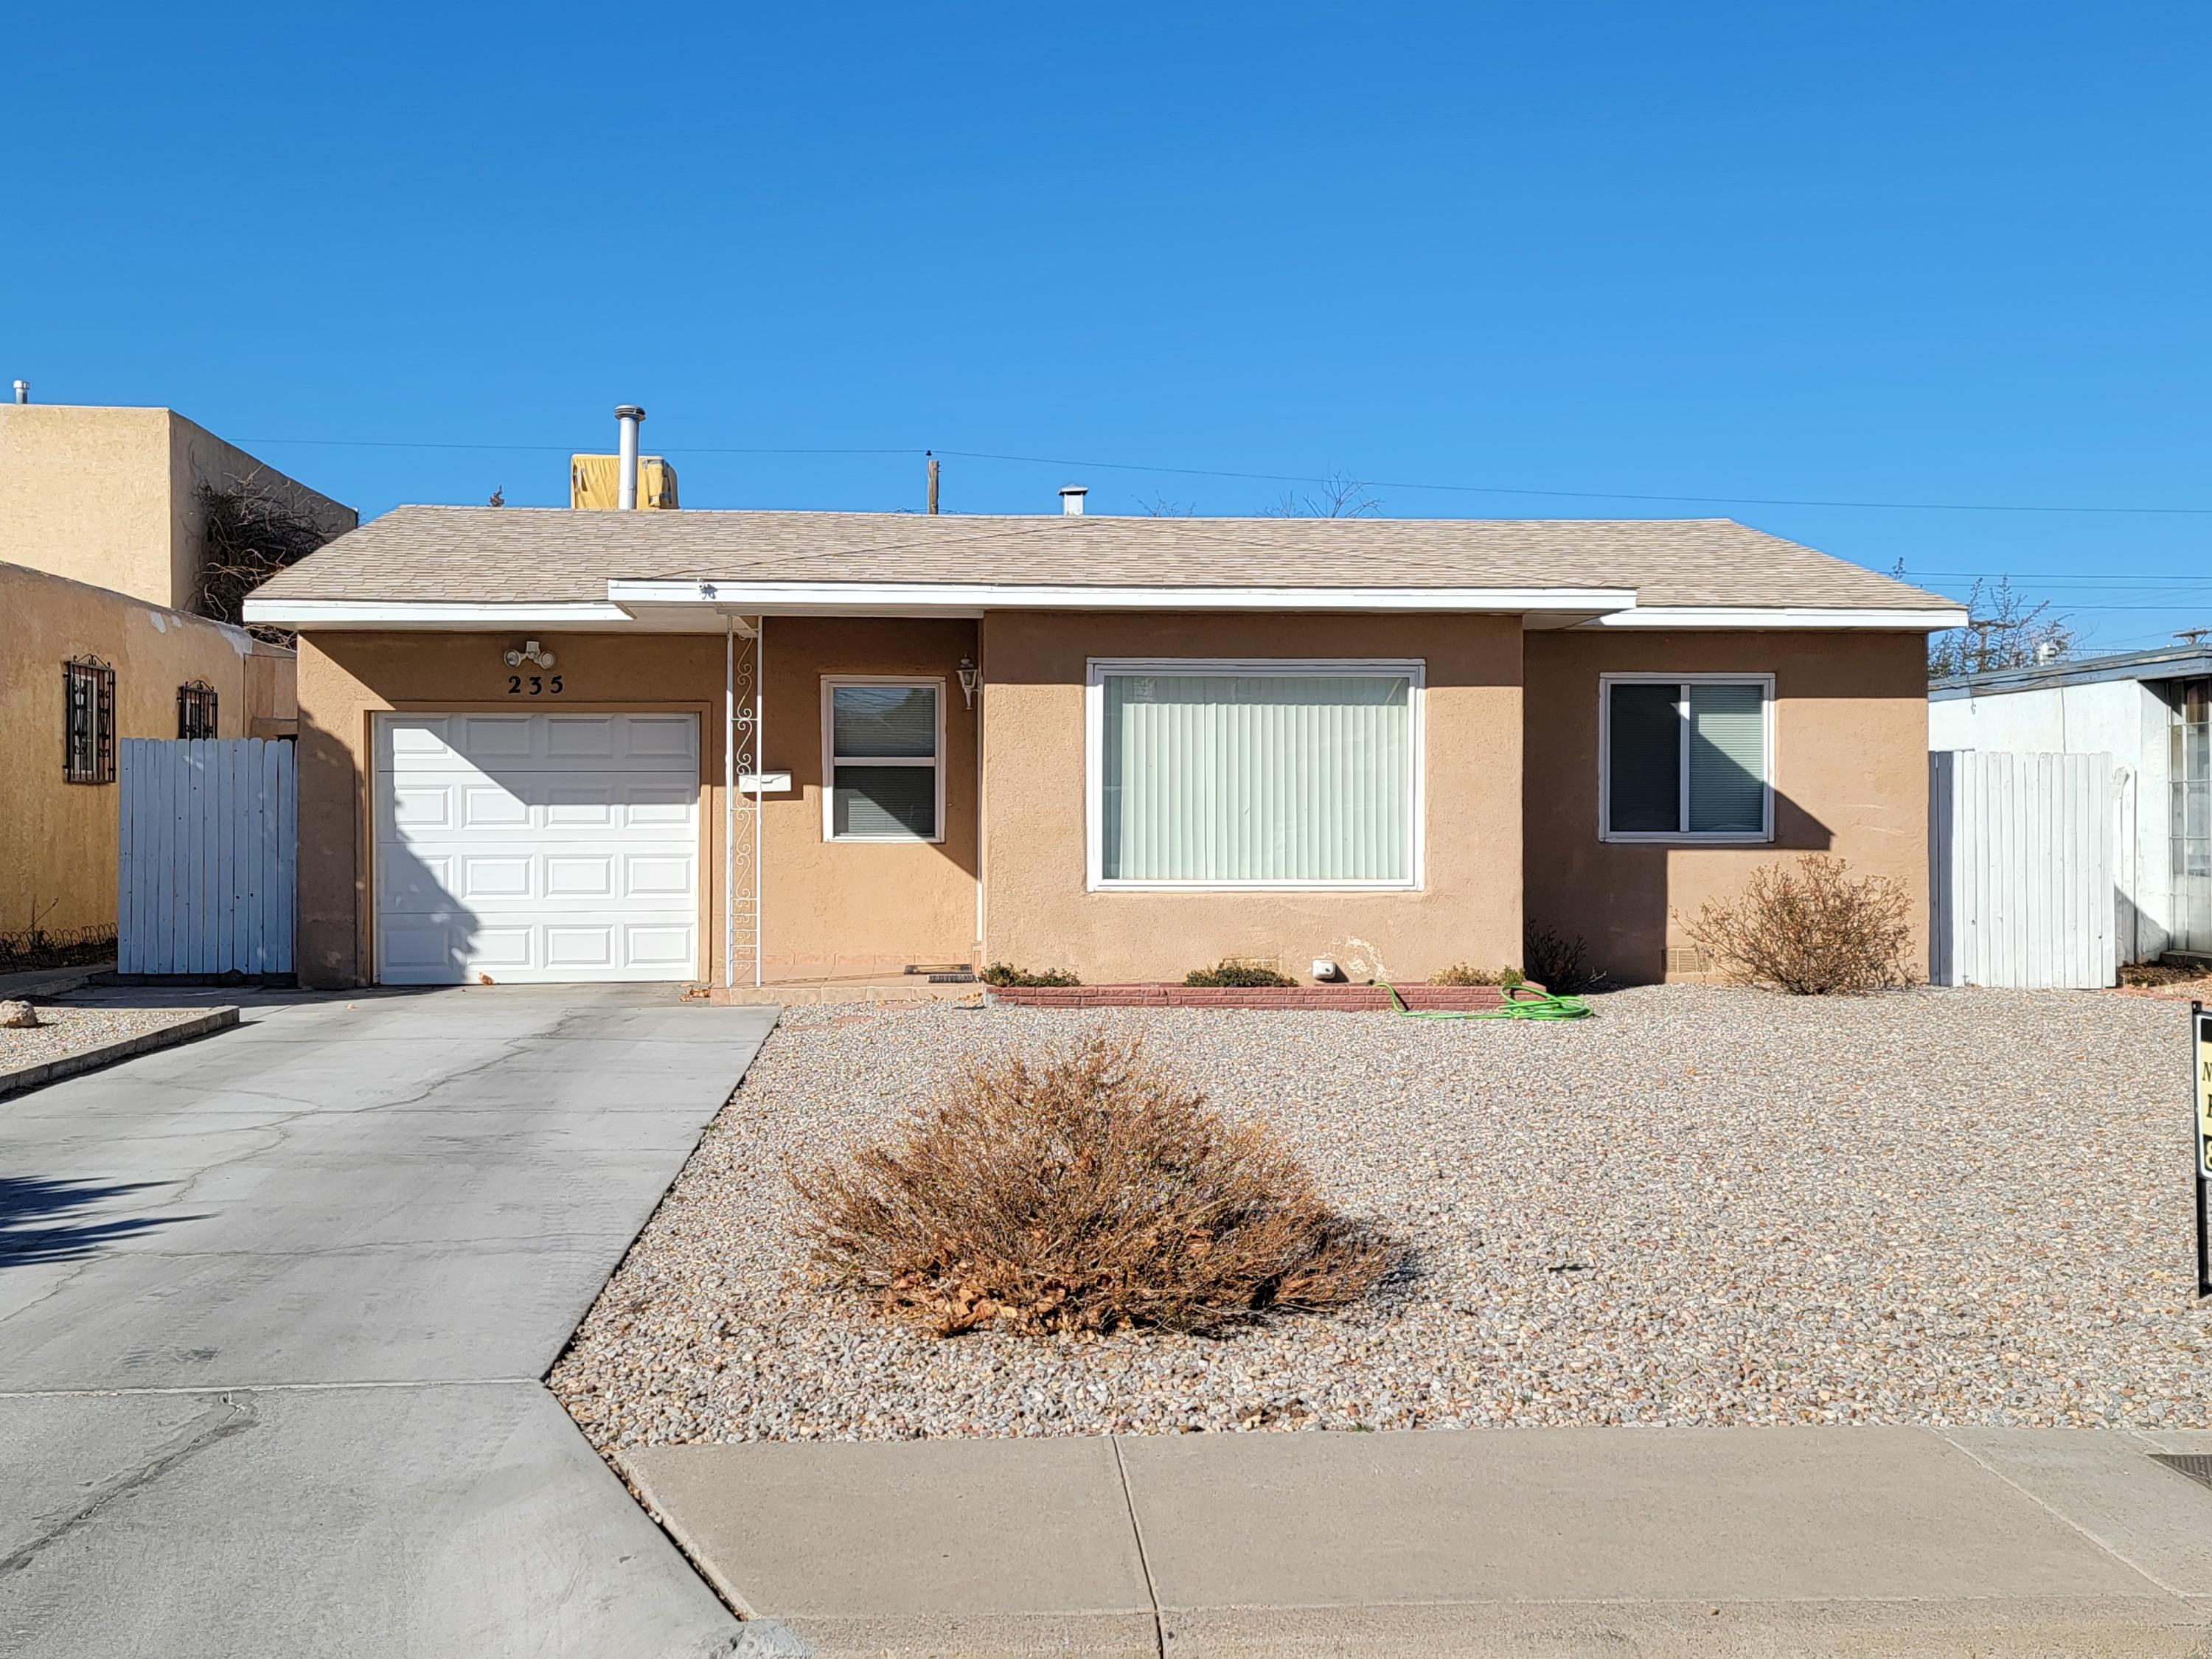 Price Reduced!  UNM .... 2 Living areas, 2/br, 1/ba, 3 car garage (1 attached - 2 detached).  Original hardwood floors, updated kitchen, bath and windows.   All appliances stay.  Covered patio outback.  Backyard access through alley (w/electronic gate) into detached garage w/workshop.  Additional storage shed.